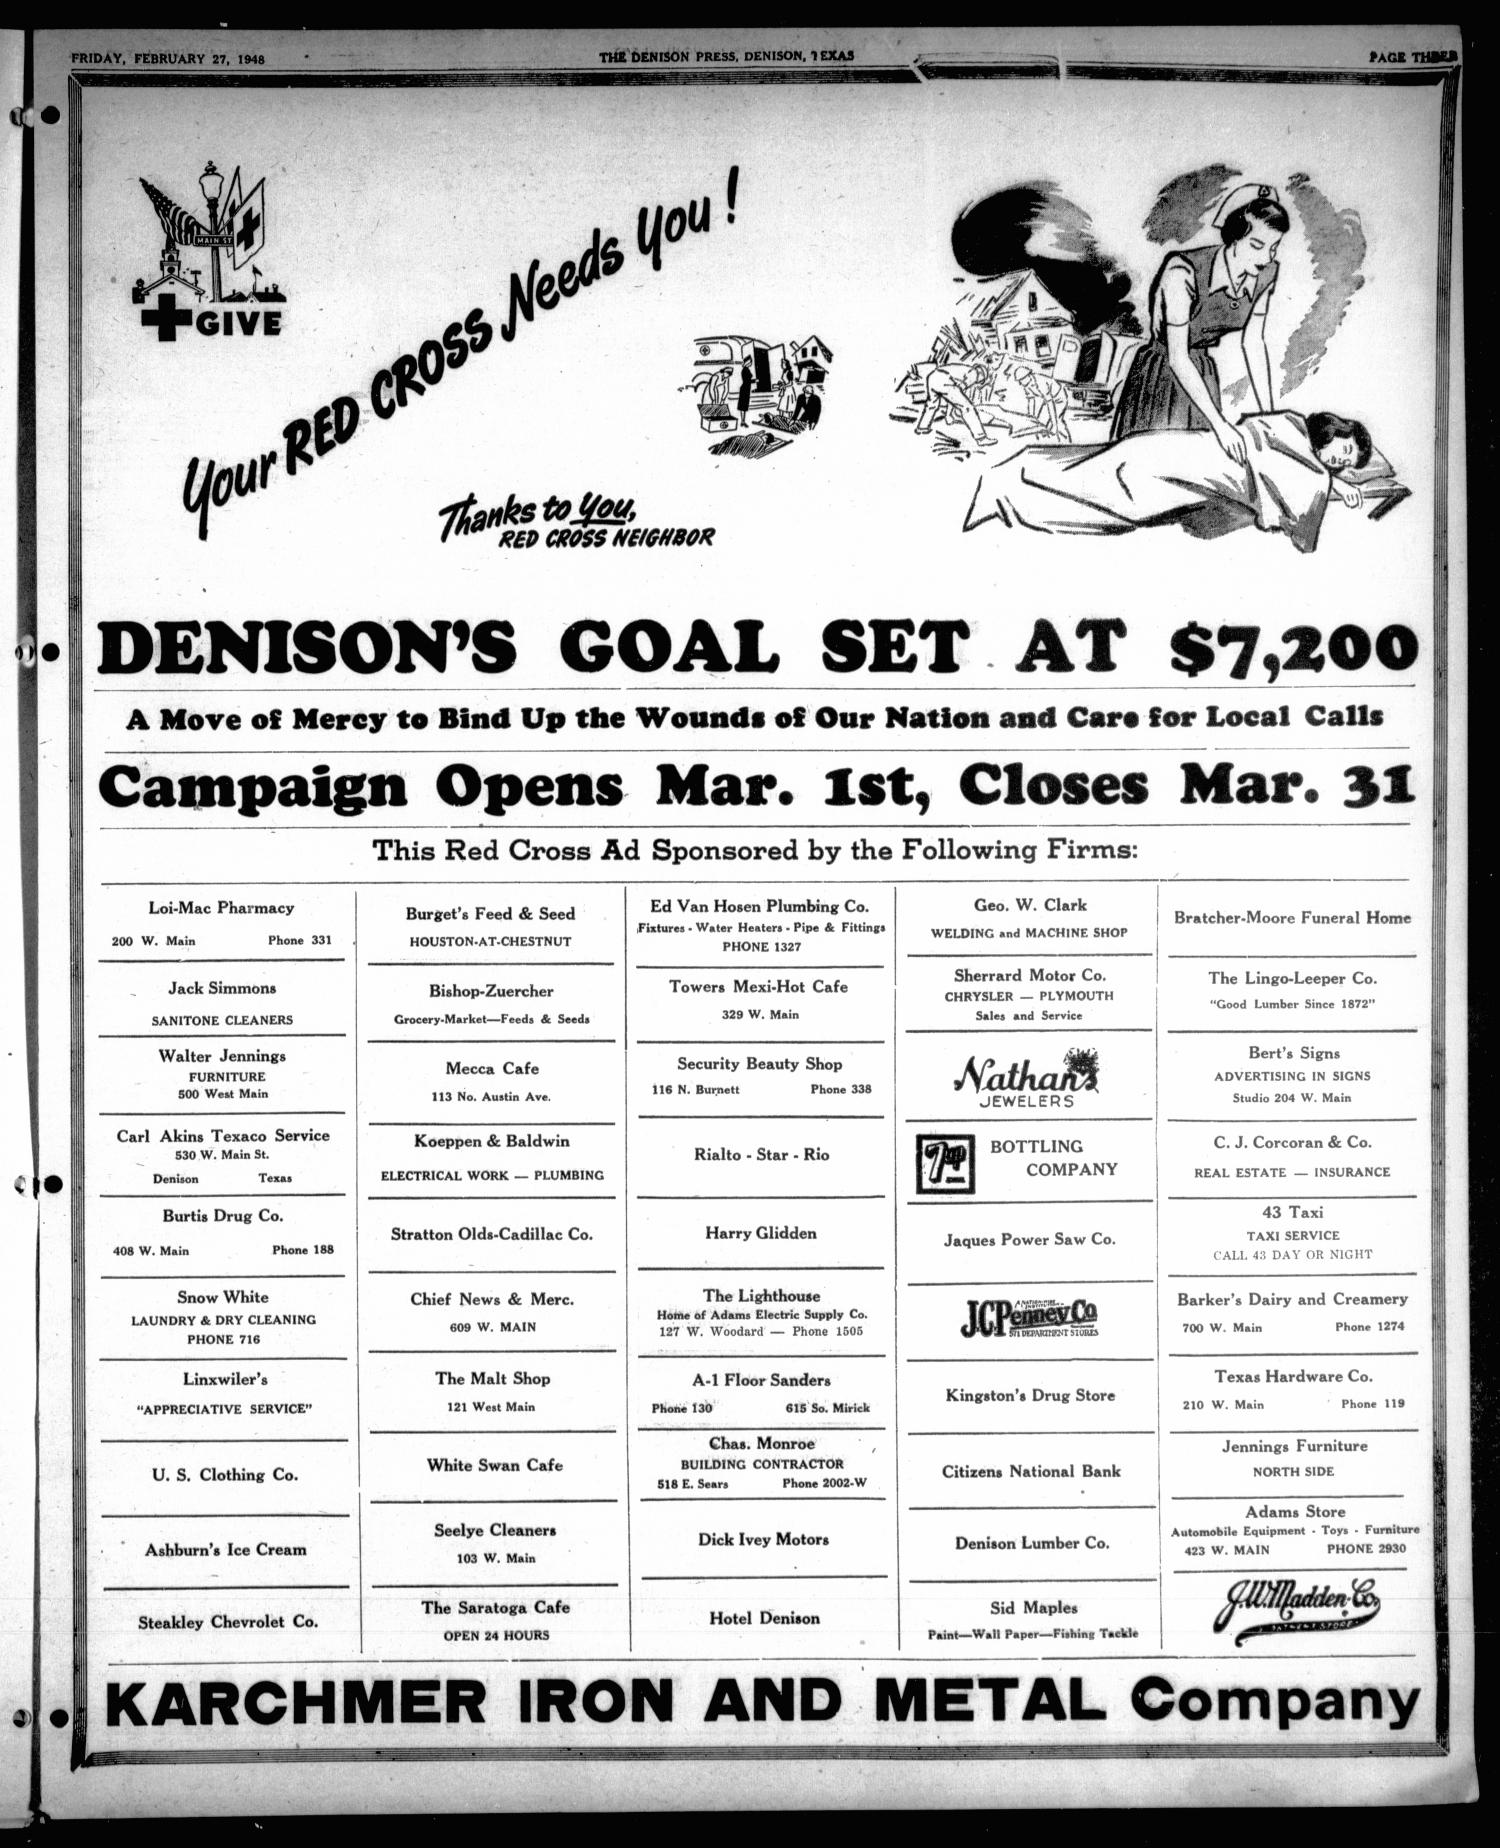 The Denison Press (Denison, Tex.), Vol. 19, No. 36, Ed. 1 Friday, February 27, 1948 - Page 3 of 6 - The Portal to Texas History